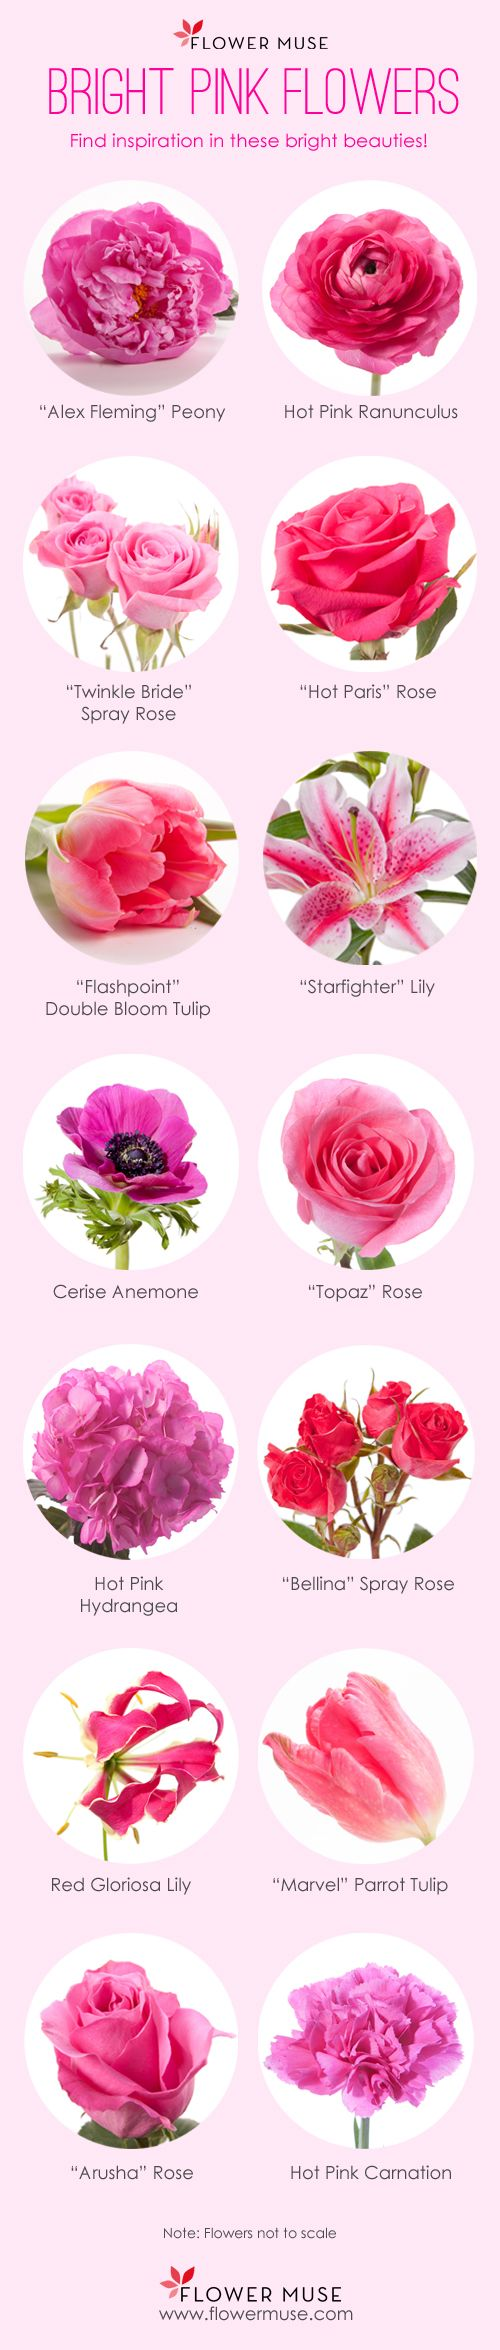 Our Favorite Bright Pink Flowers Flower inspiration season calendar